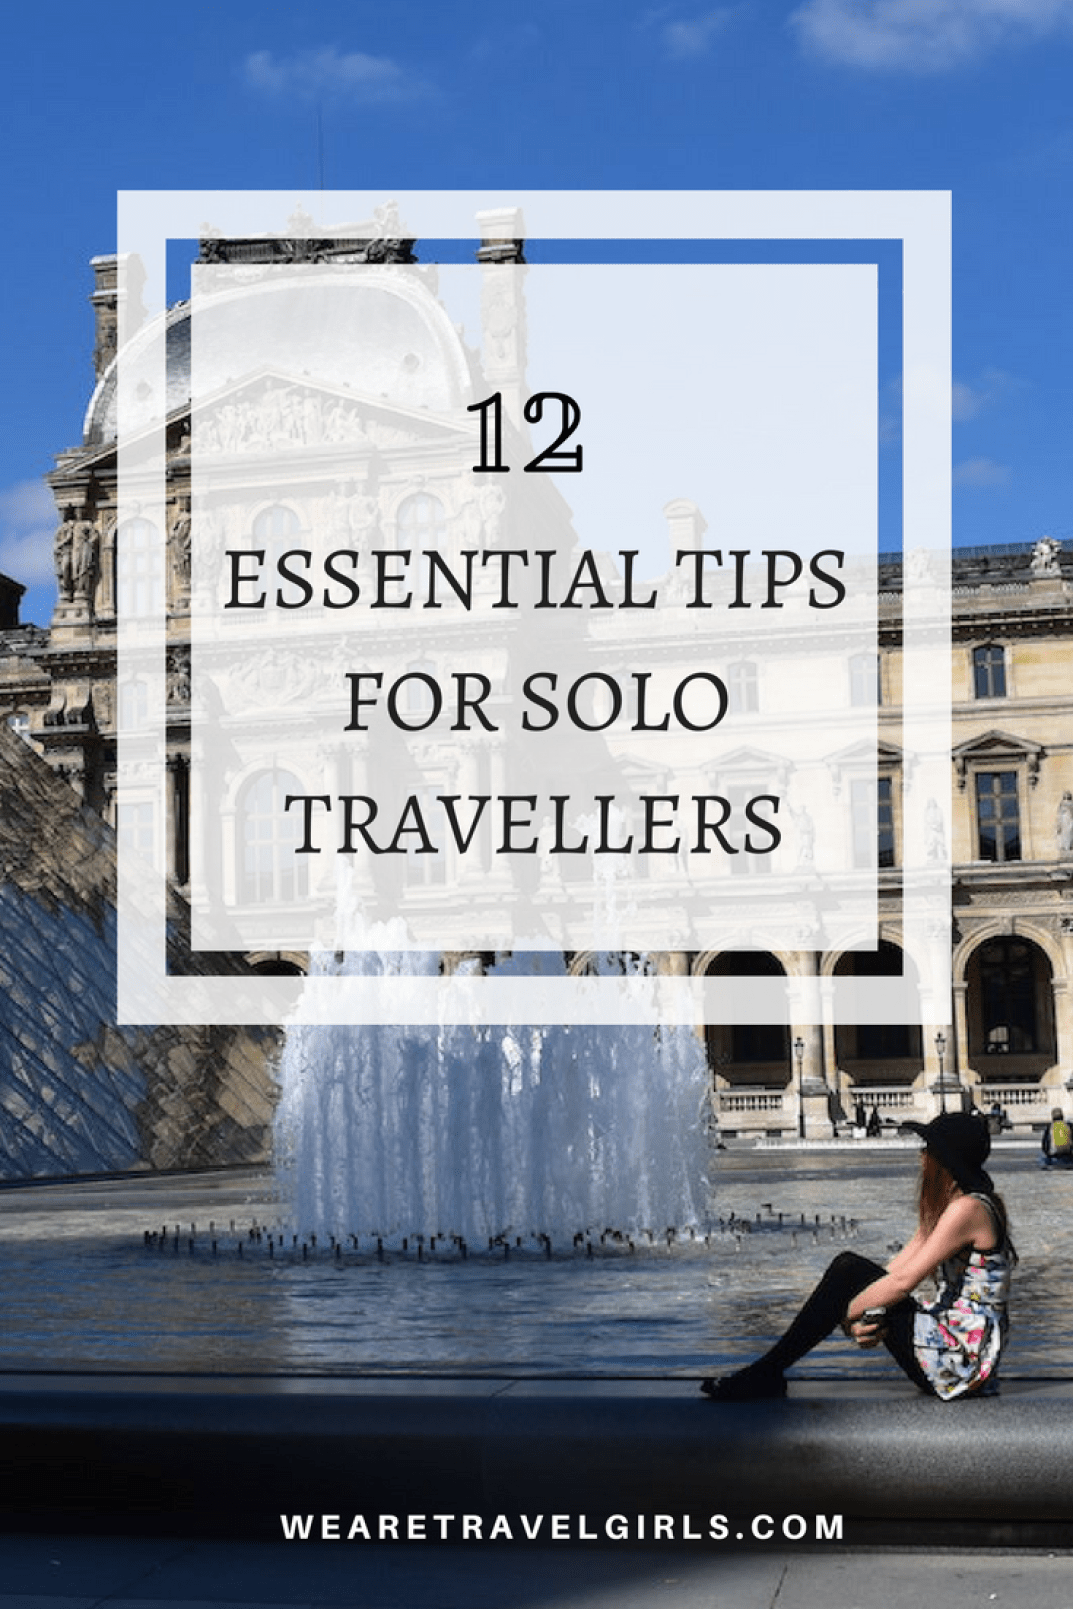 12 ESSENTIAL TIPS FOR SOLO TRAVELLERS